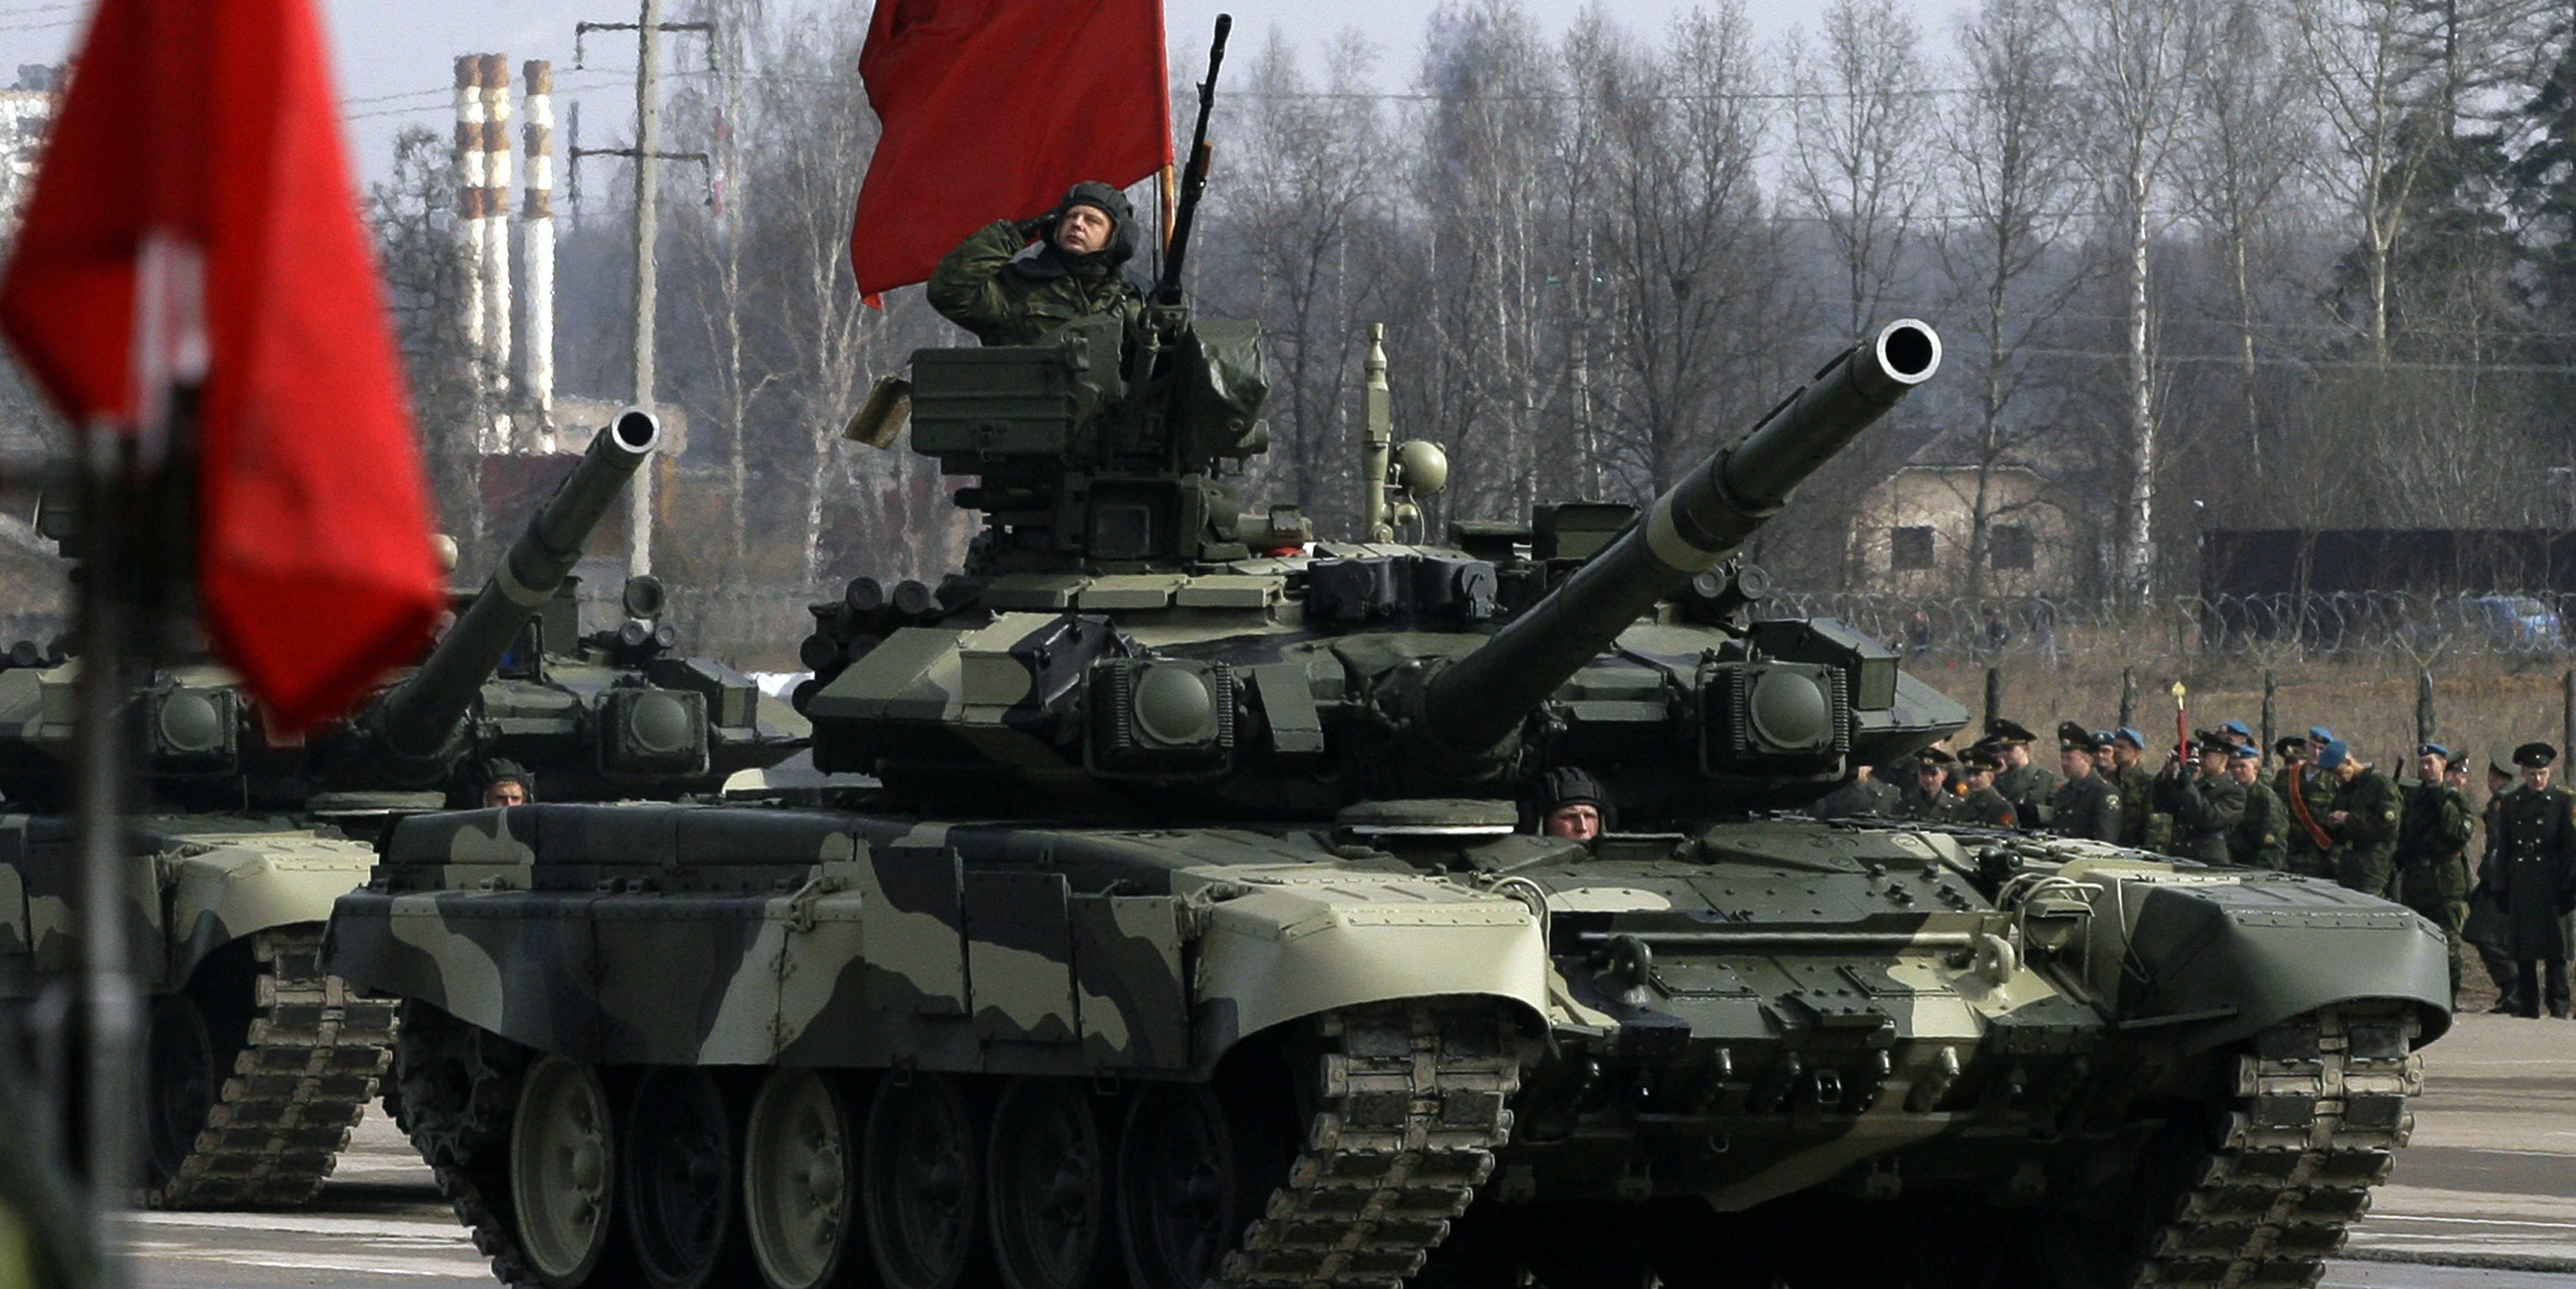 Armoured vehicles are paraded during a Victory Day parade rehearsal on April 24, 2009 in Alabino, outside Moscow, Russia. On May 9, 2009 Russia will mark the 64th anniversary of the Soviet Union's victory over Nazi Germany in World War Two.